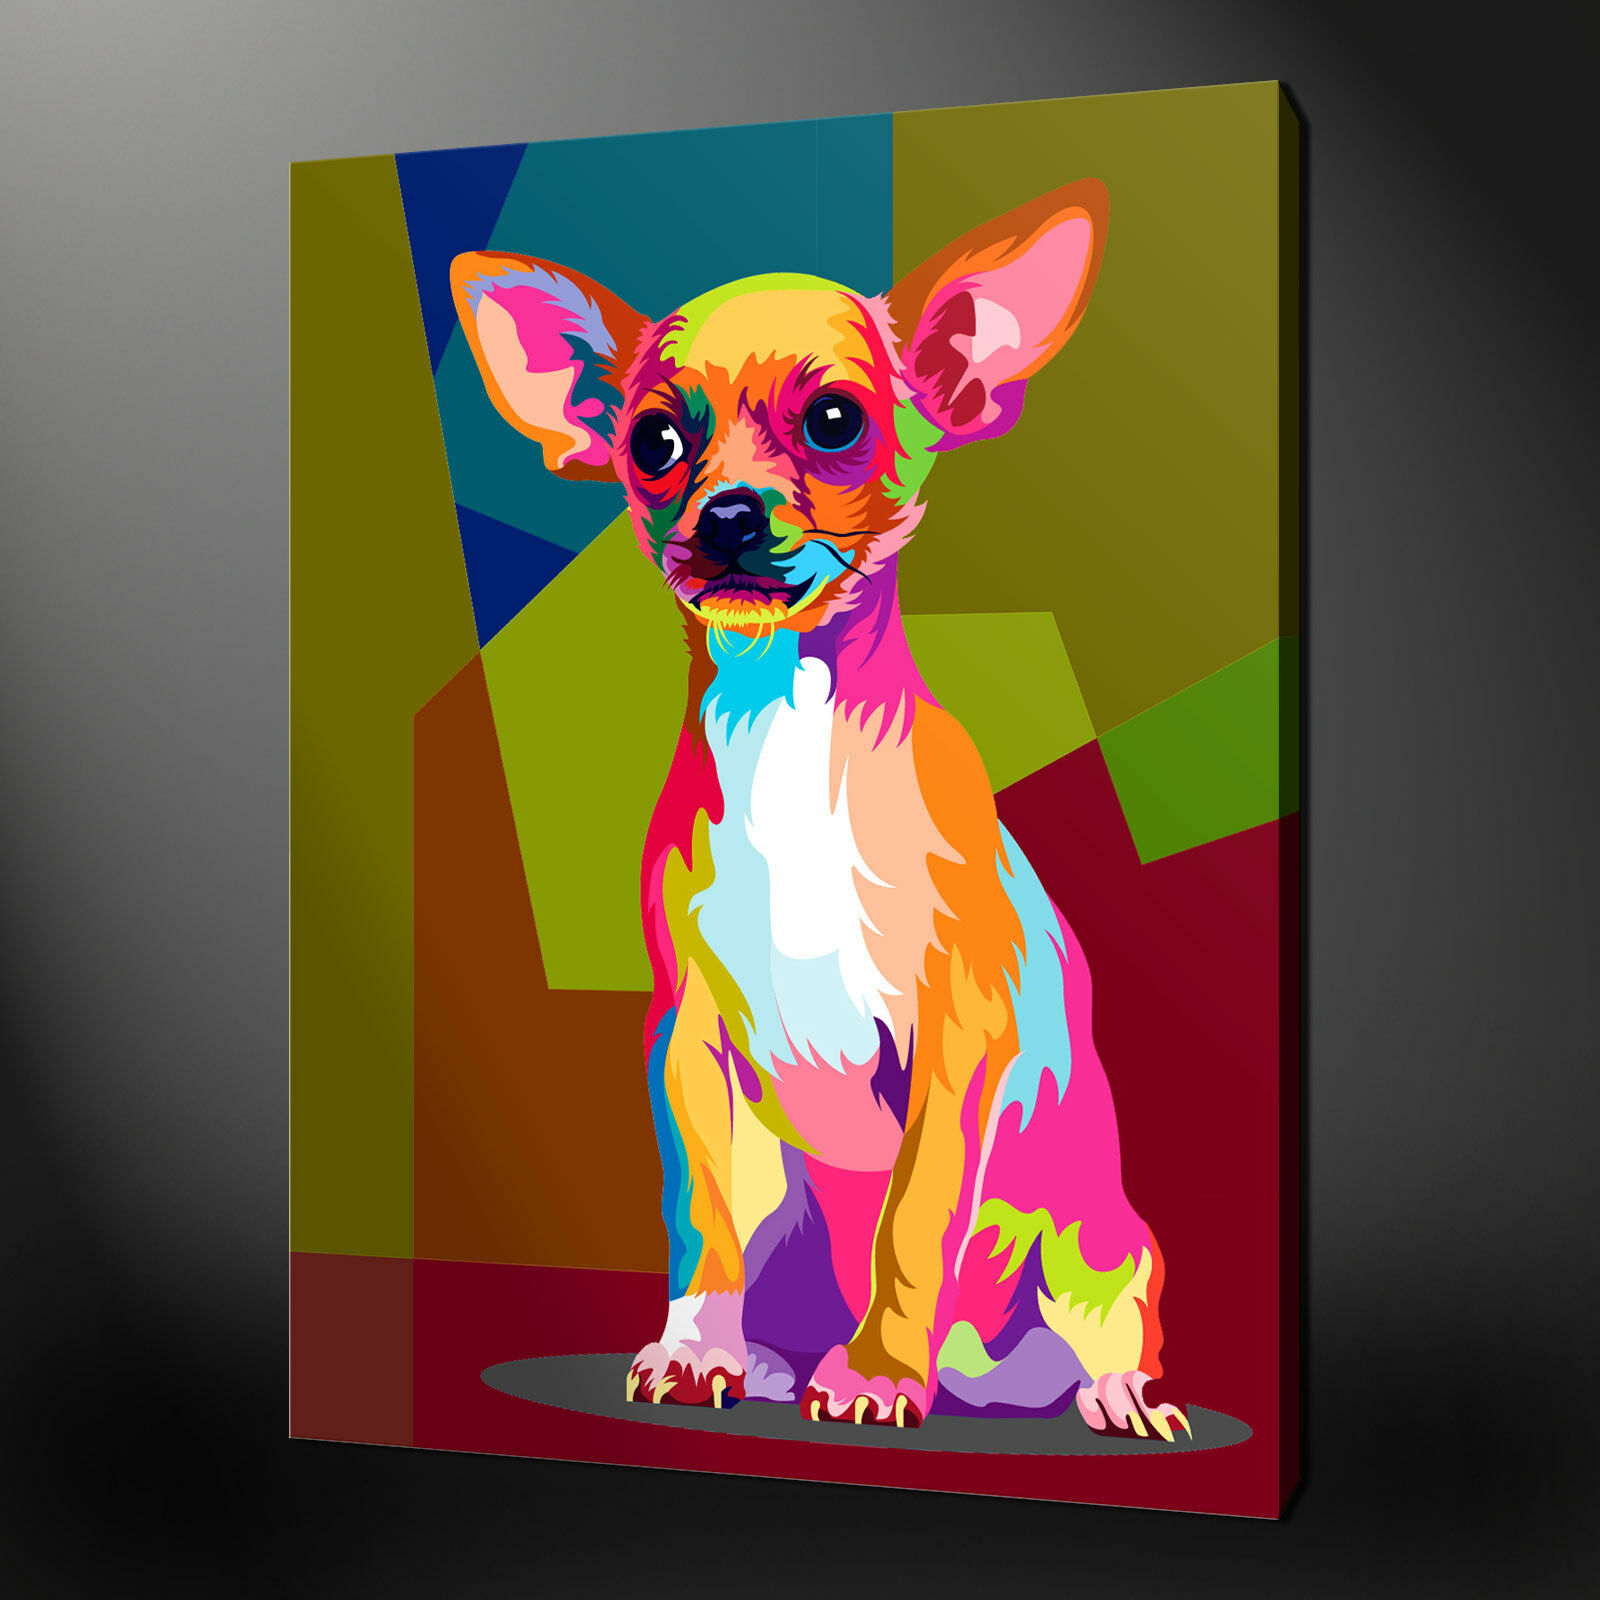 ANIMALS CANVAS PRINT PICTURE WALL ART COLLECTION POP ART ART ART FREE FAST DELIVERY 8c6f90